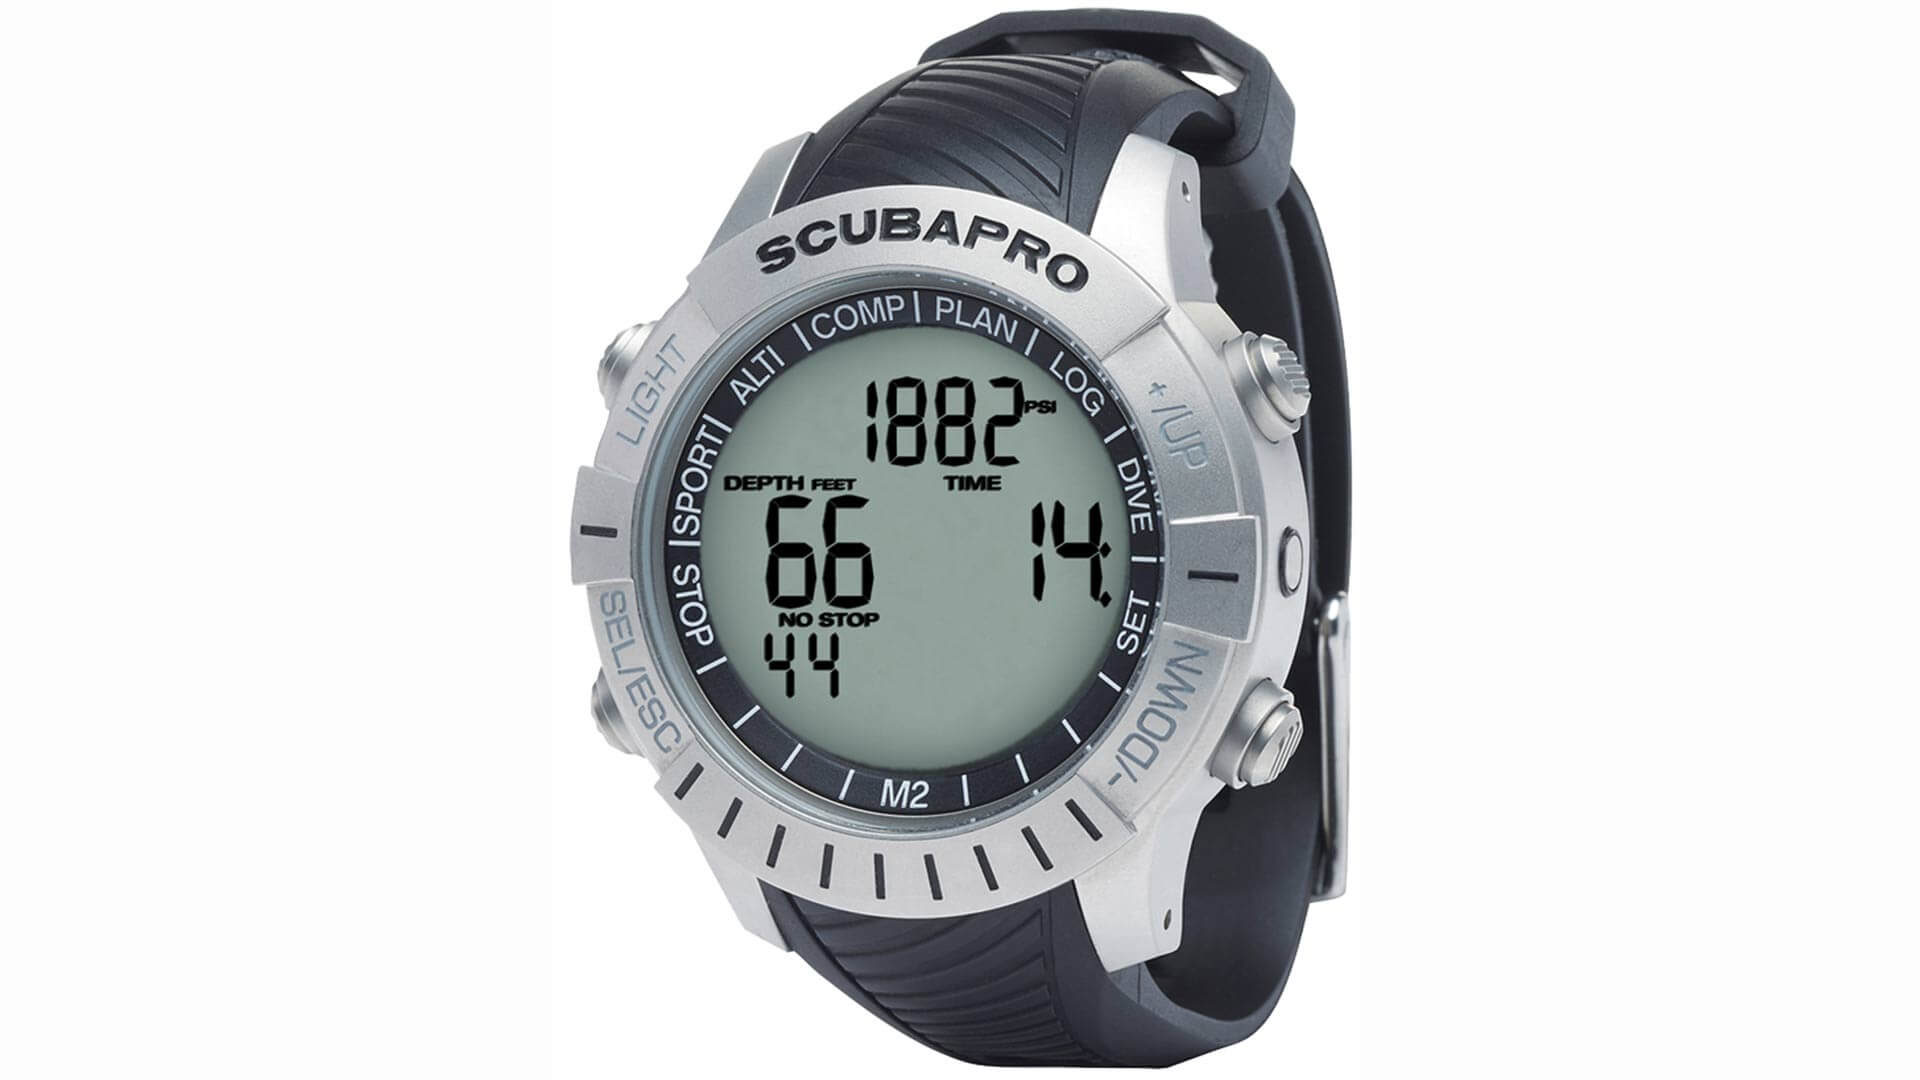 Scubapro Mantis M2 – Dive Computer – Out of Stock